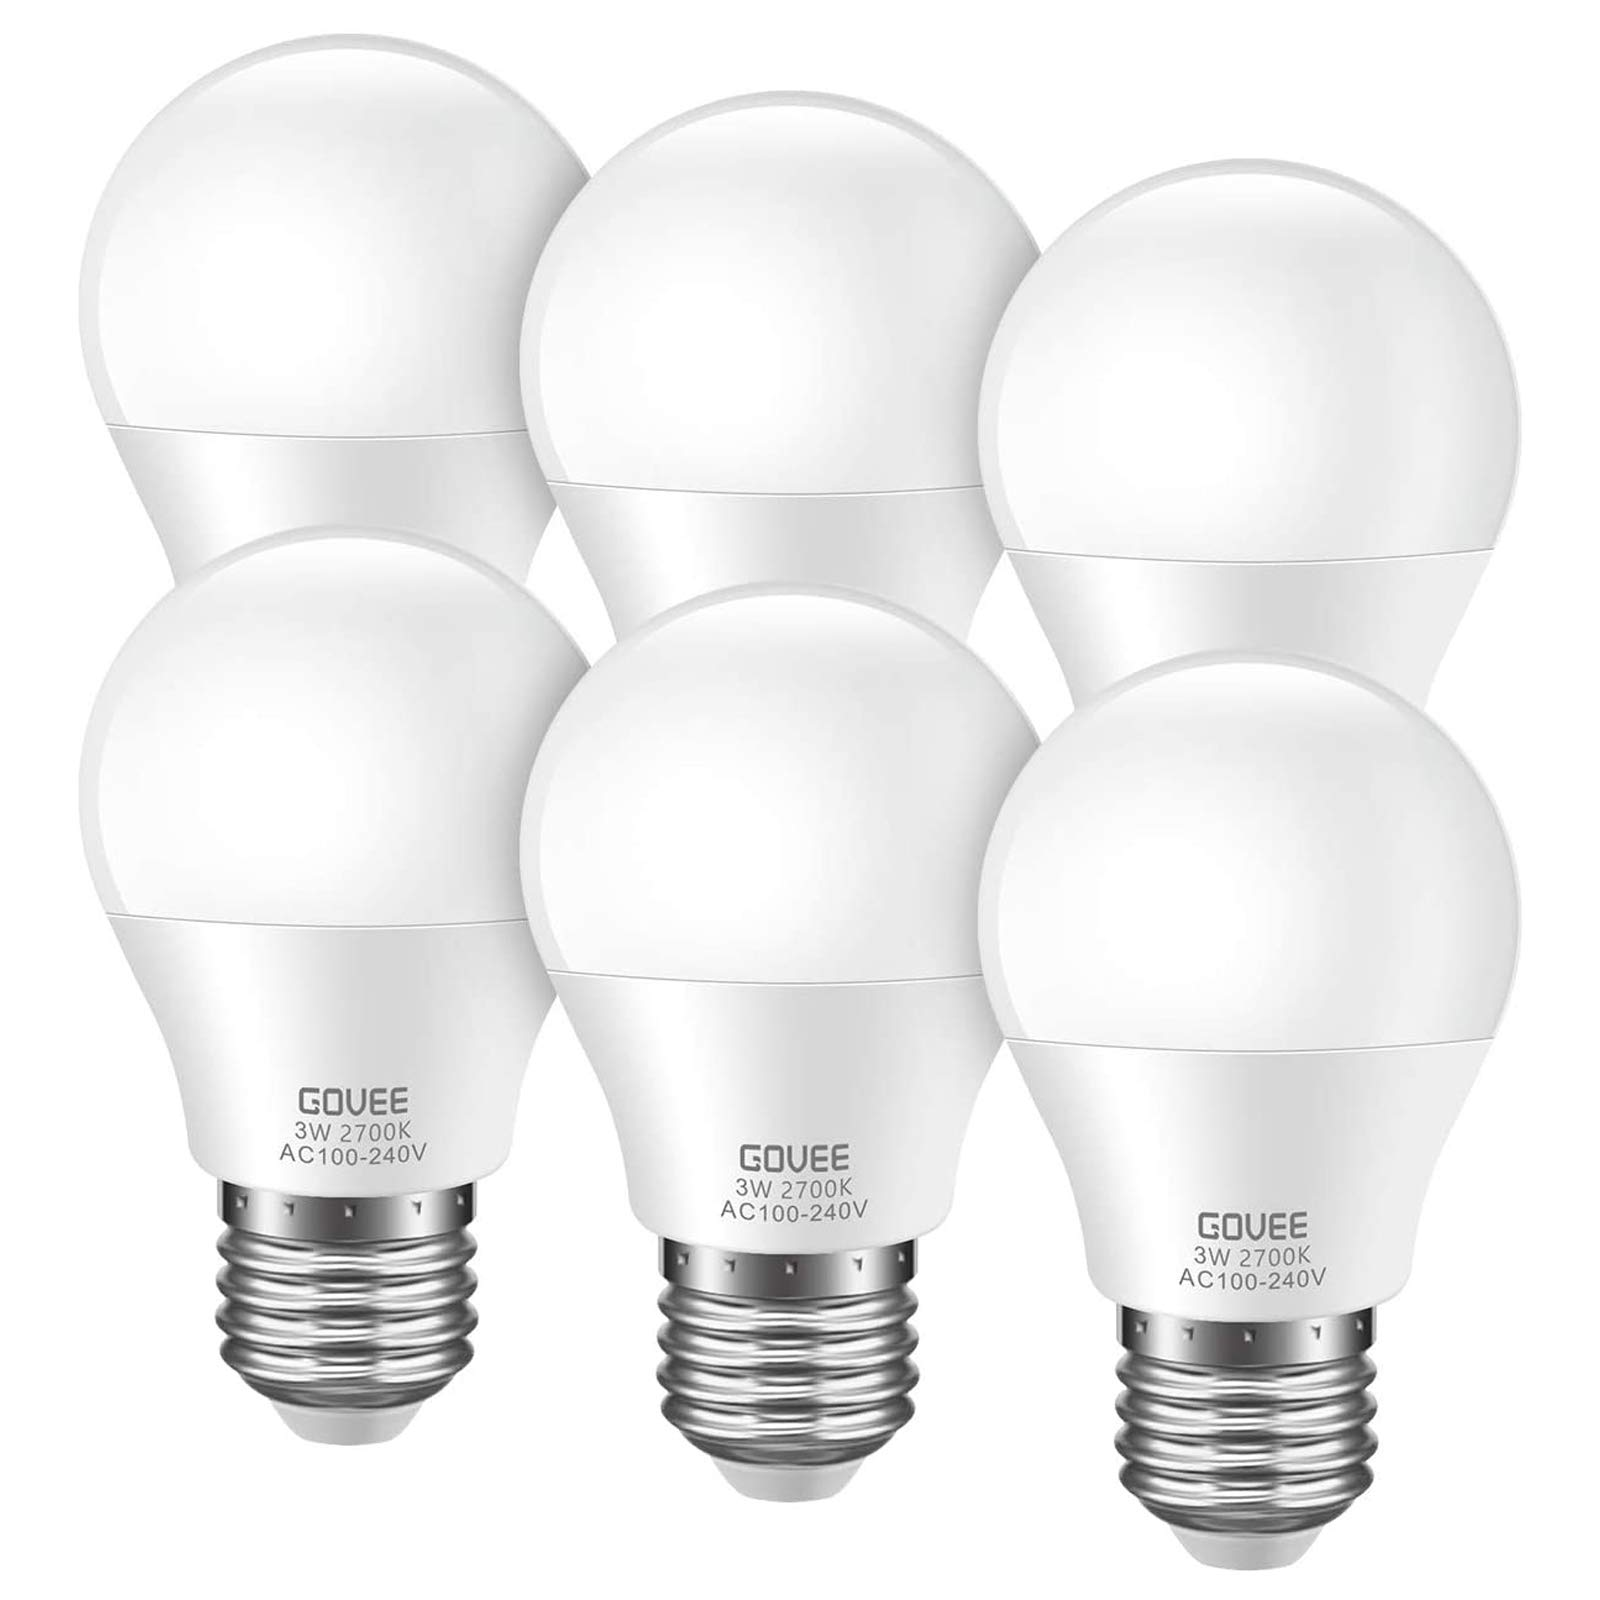 Govee LED Light Bulbs 3W (25 Watt Equivalent), G40 Light Bulbs 2700K Warm White E26 Medium Screw Base LED Bulbs Energy Saving for Bedroom Night Lights, Chandelier, Refrigerator, NOT DIMMABLE, 6 Pack